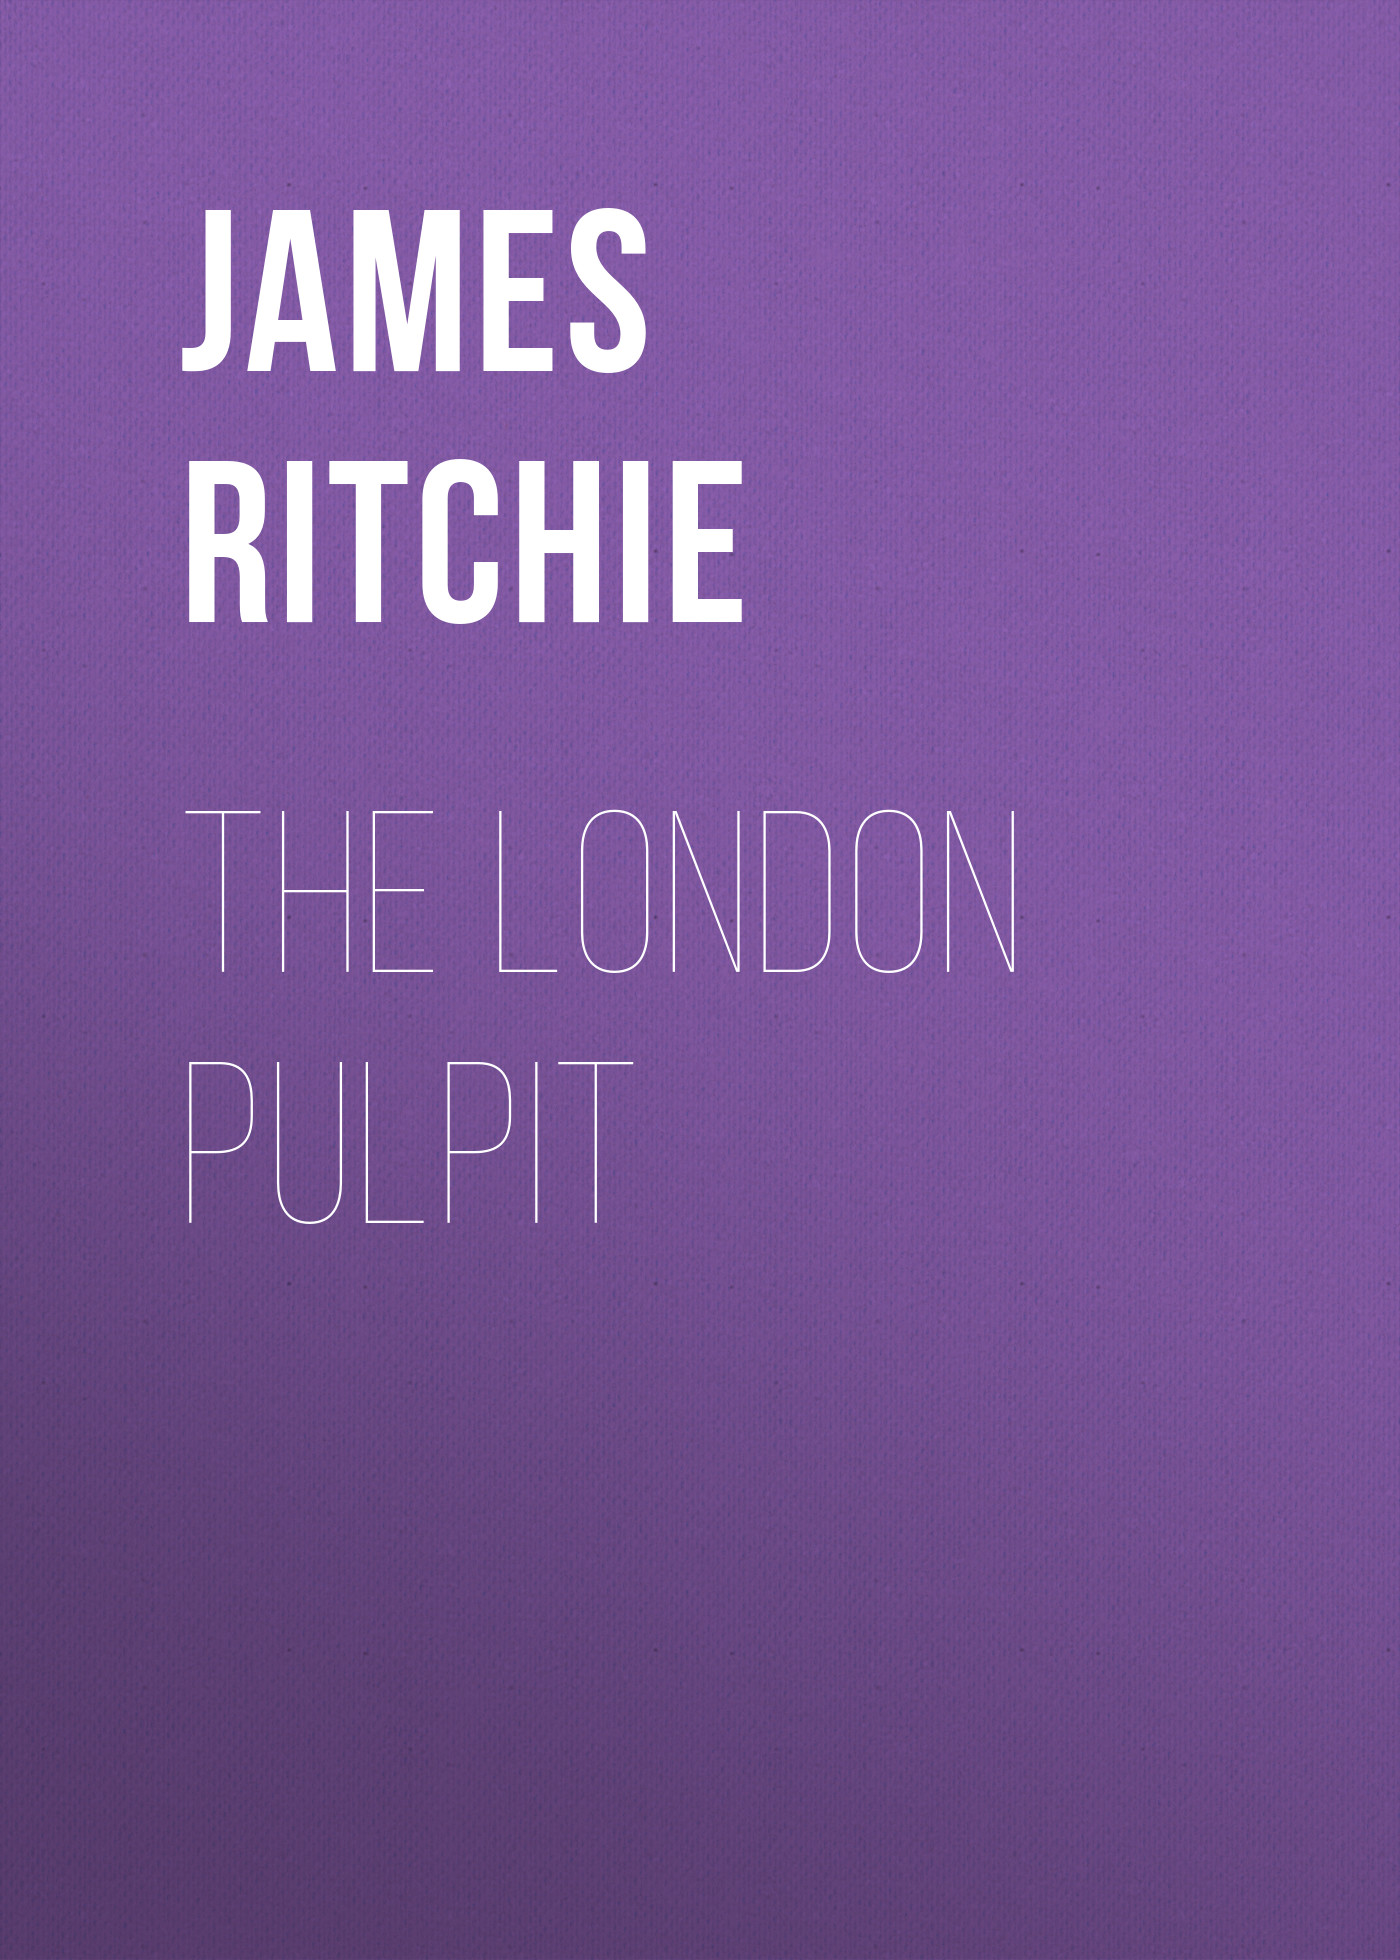 James Ewing Ritchie The London Pulpit альманах альманах российский колокол спецвыпуск им м ю лермонтова выпуск 1